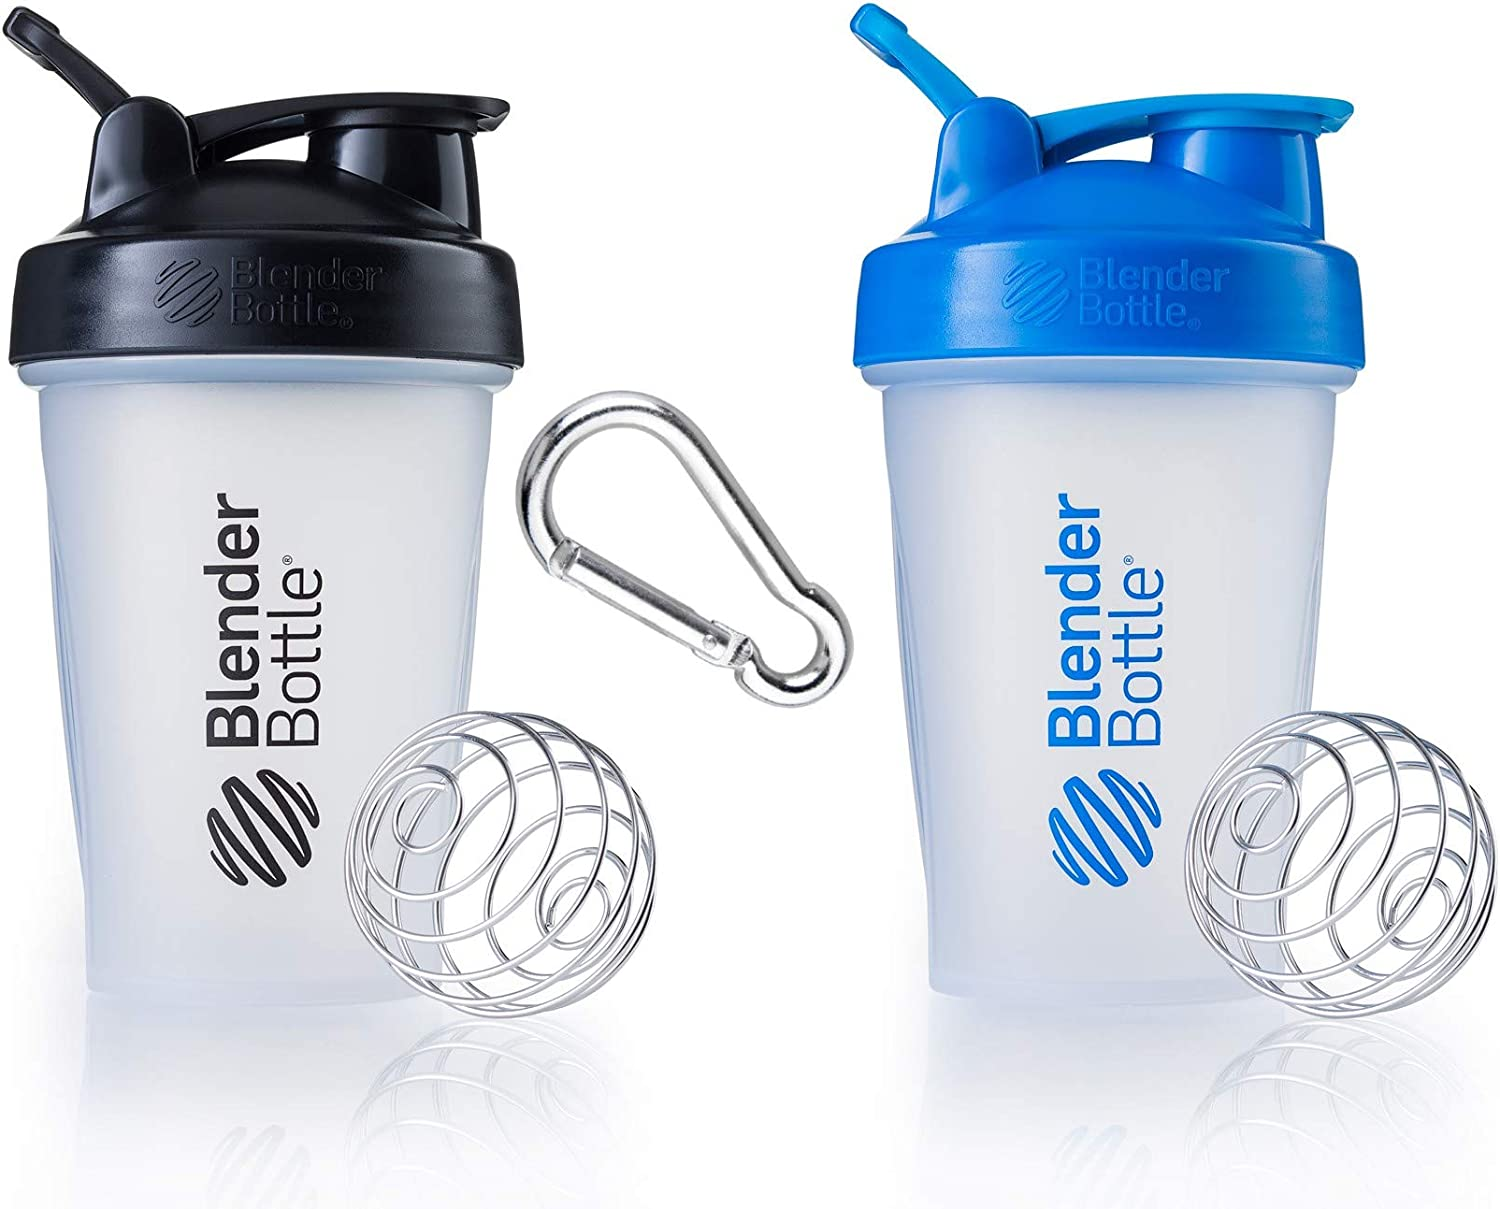 Blender Bottle 2 Pack with Stainless Steel Wire Whisk Ball and Carabiner - Two 20 Ounce Shaker Bottles with Carabiner for Protein Shakes and Supplements - Black and Cyan